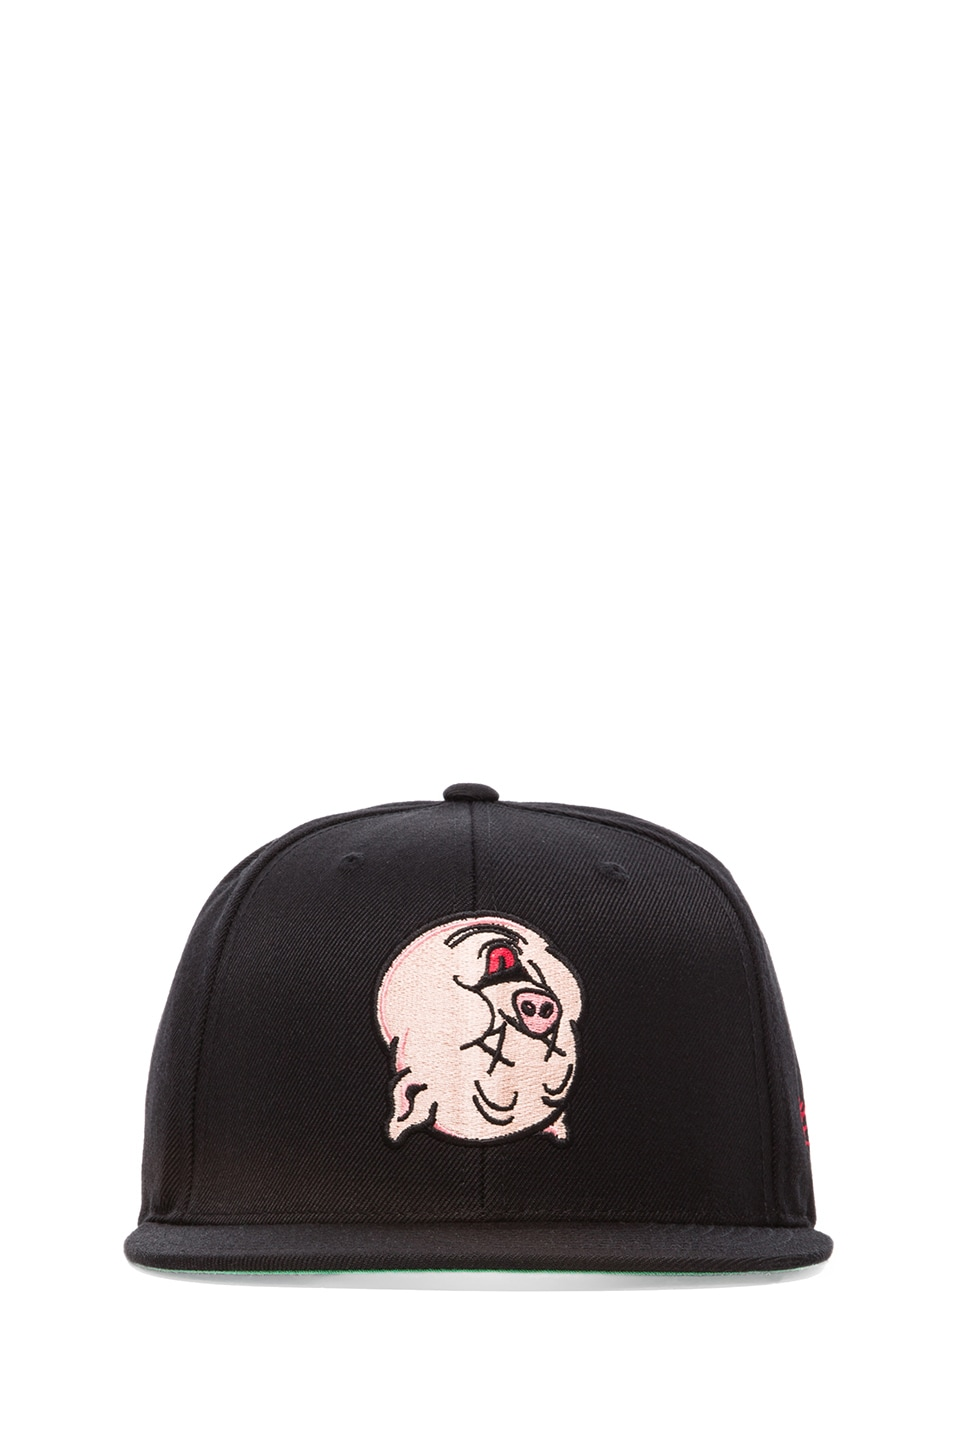 SSUR Capitalist Pig Snapback in Black